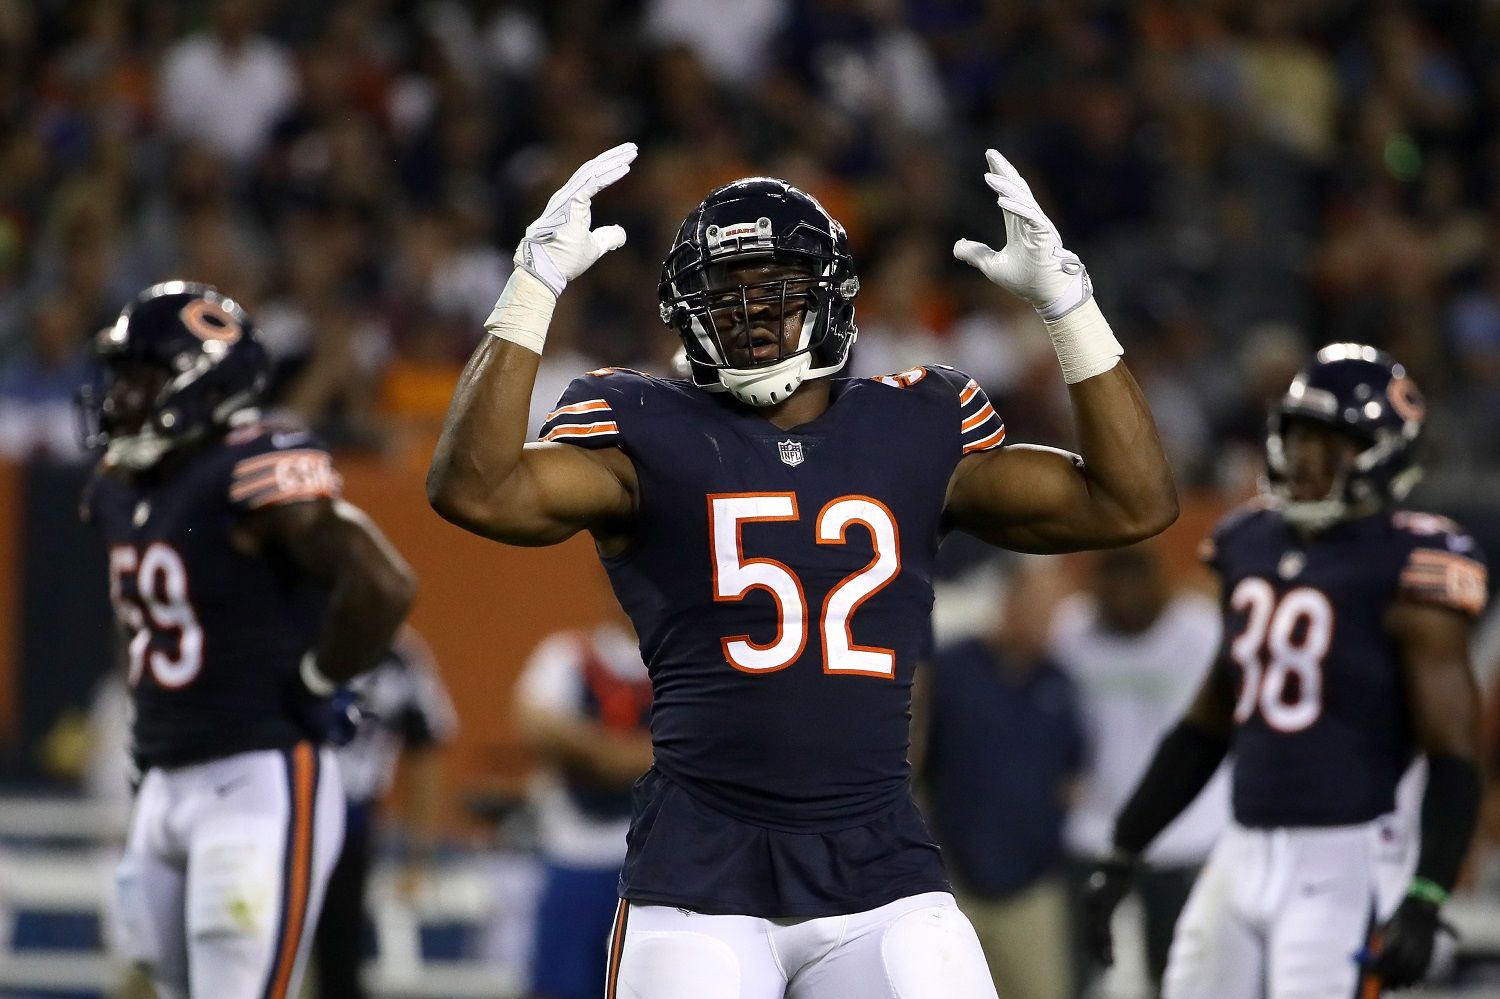 CHICAGO, IL - SEPTEMBER 17:  Khalil Mack #52 of the Chicago Bears reacts in the third quarter against the Seattle Seahawks at Soldier Field on September 17, 2018 in Chicago, Illinois.  (Photo by Jonathan Daniel/Getty Images)